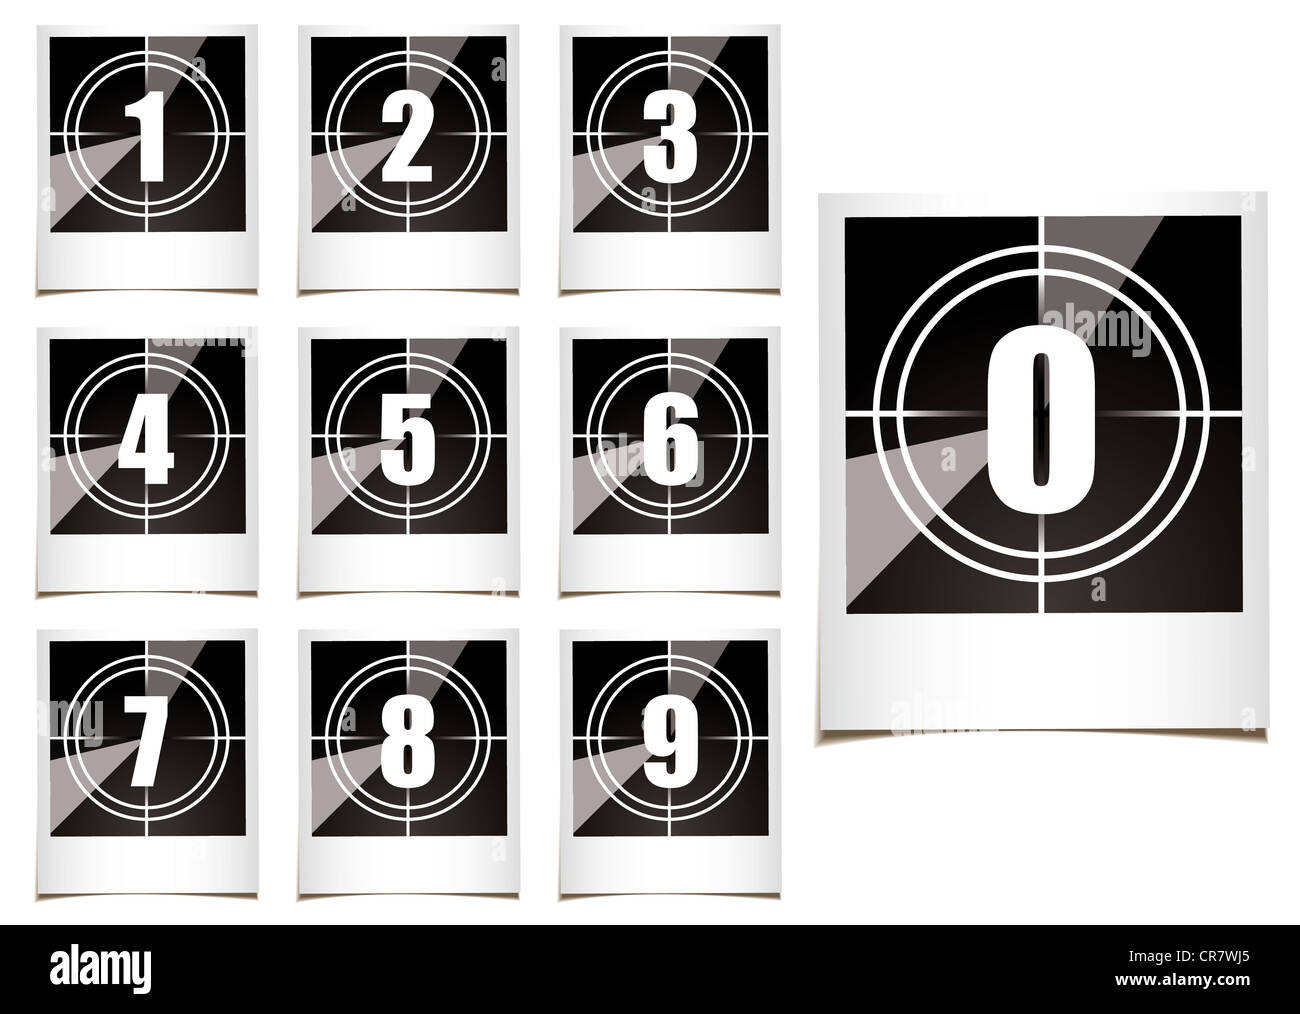 Collection of instant photographs with film type count down numbers - Stock Image